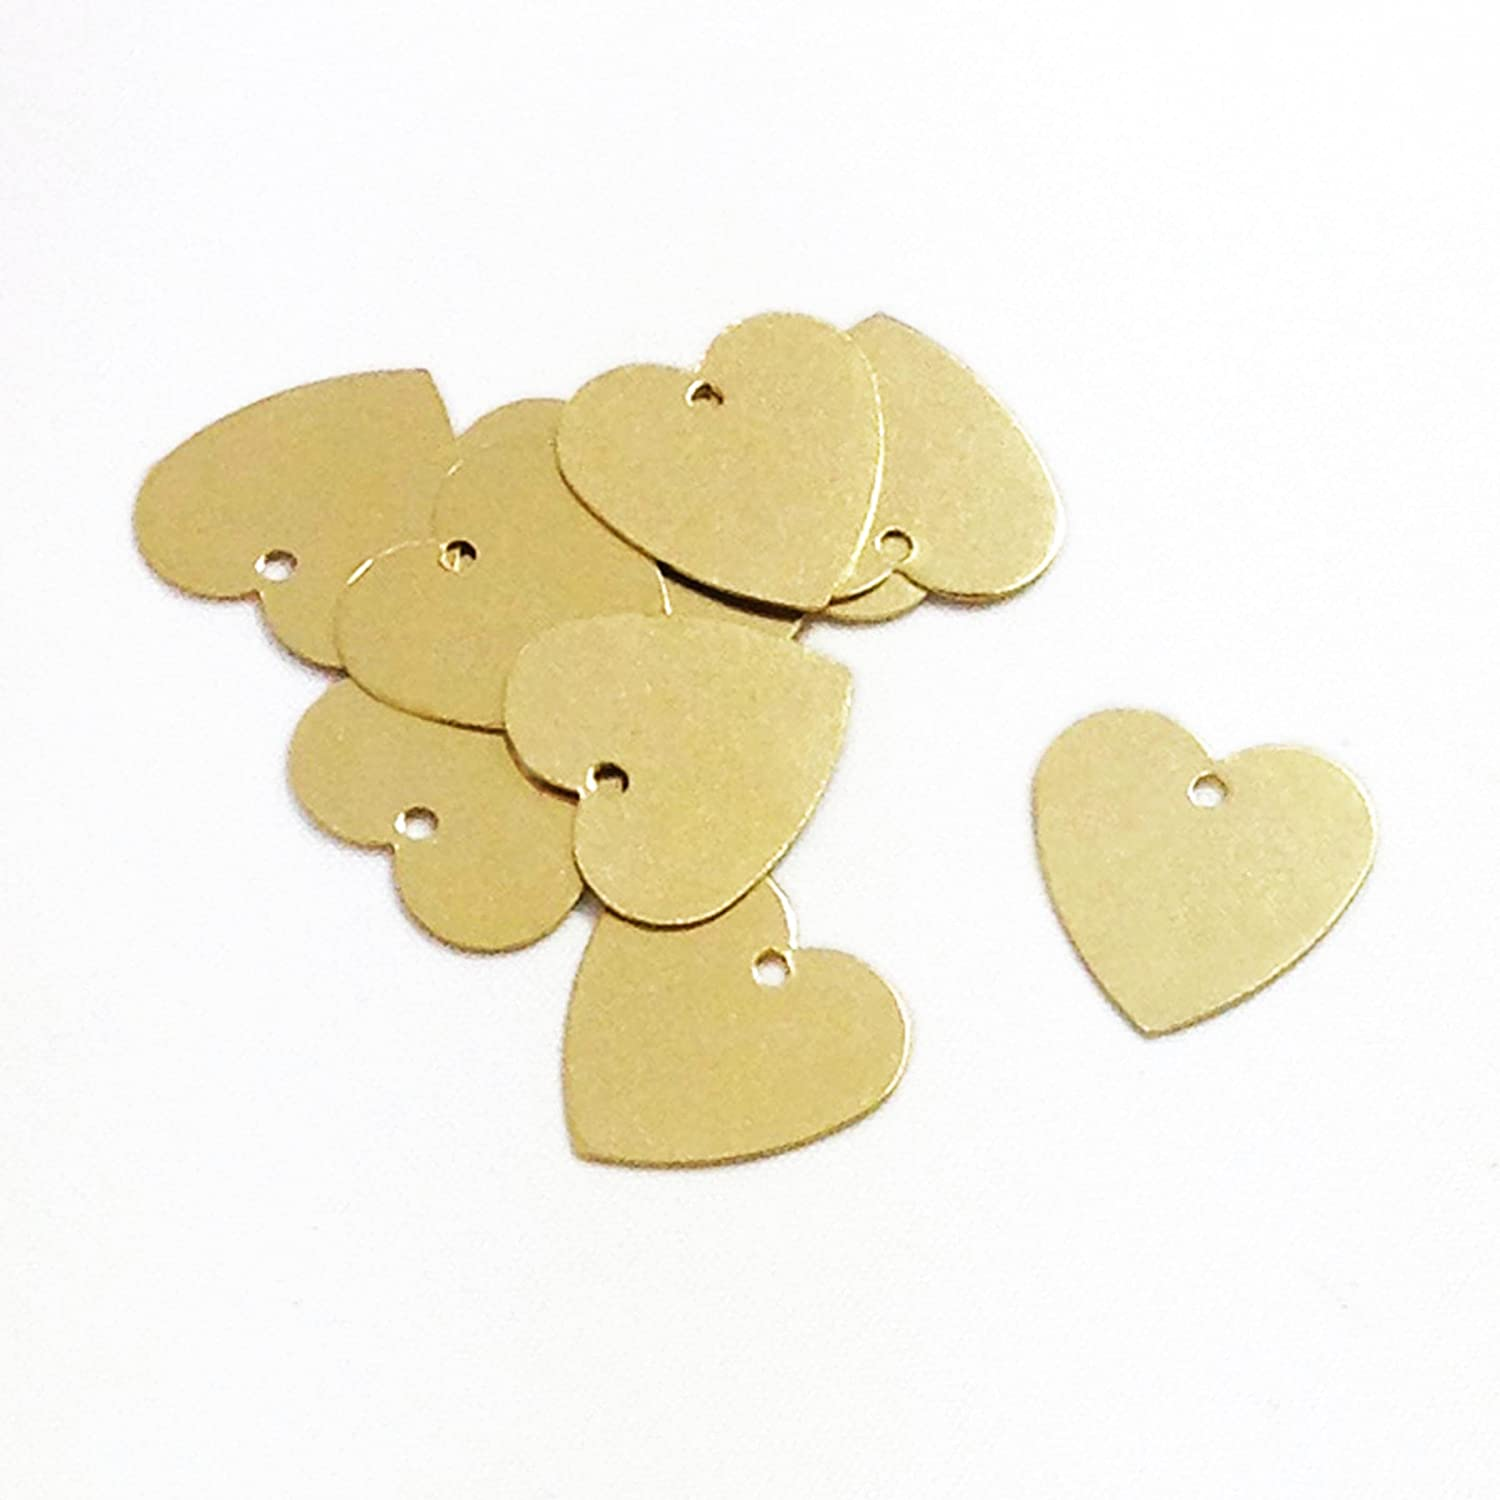 100 Brass Heart Metal Stamping Blanks mit Hole 13Mm X 13Mm Heart Metal Blanks